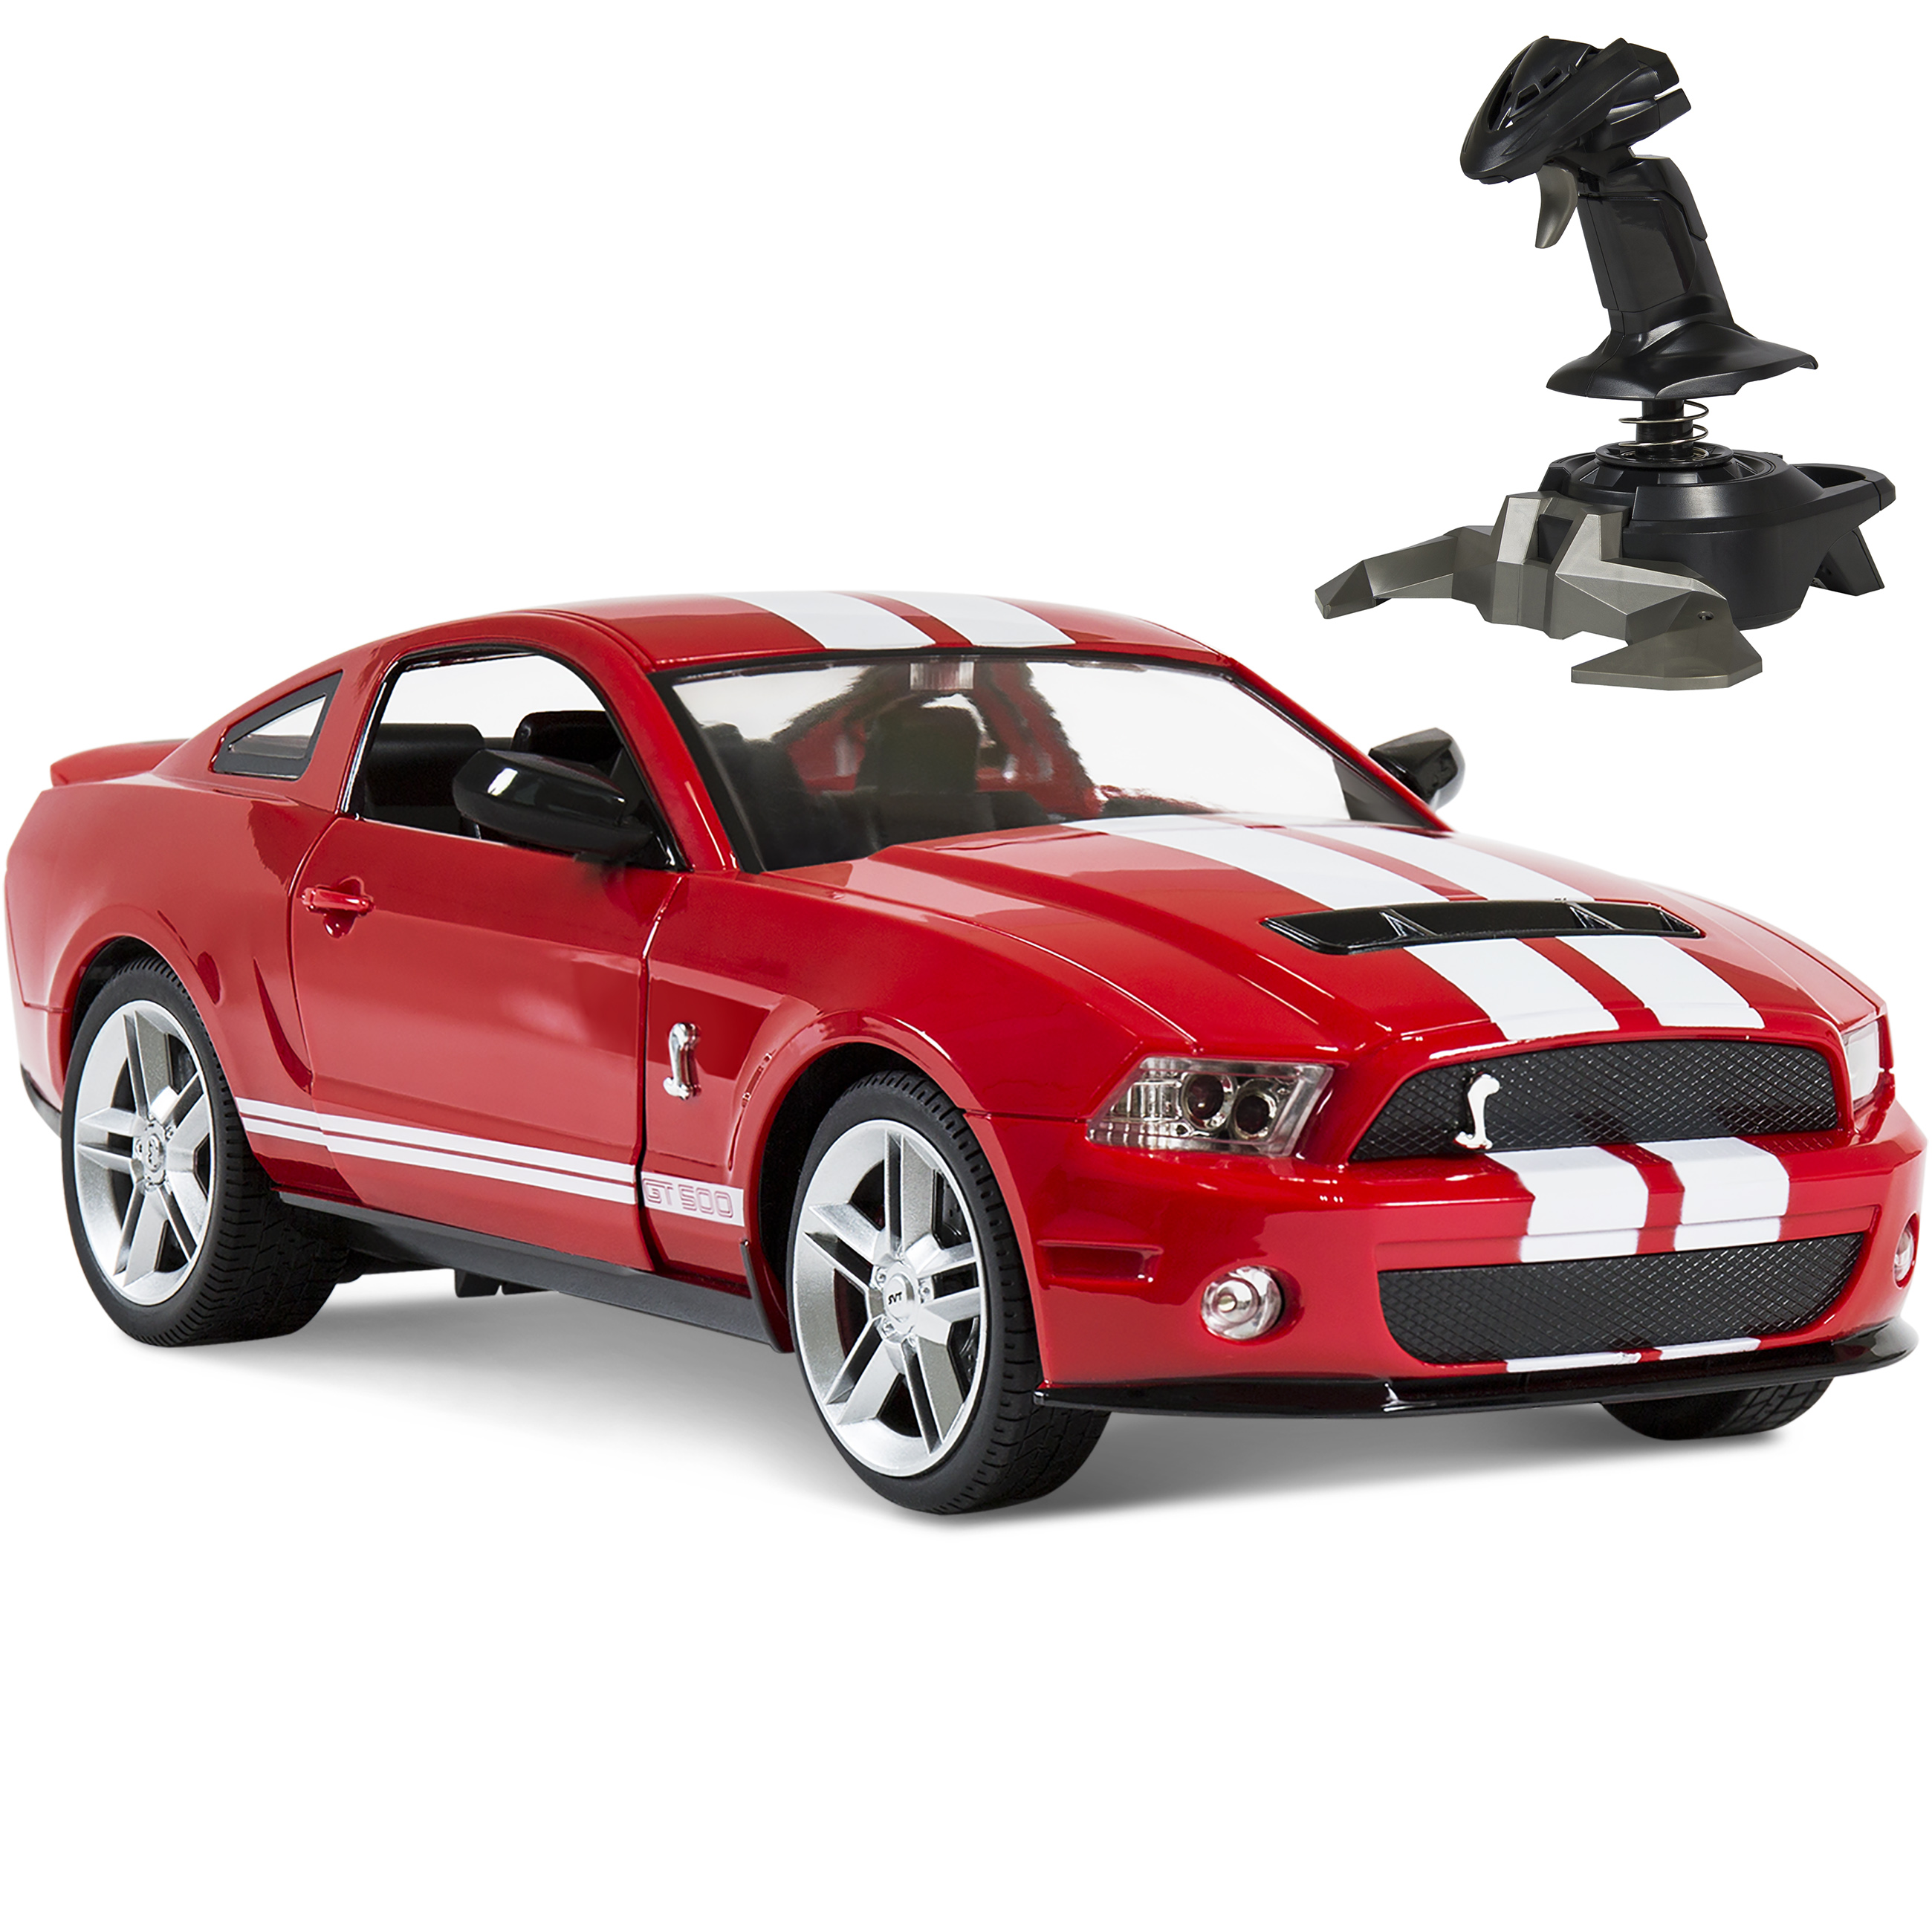 BCP 1/14 RC Ford Mustang Shelby GT500 Gravity Sensor Remote Control Car - Red